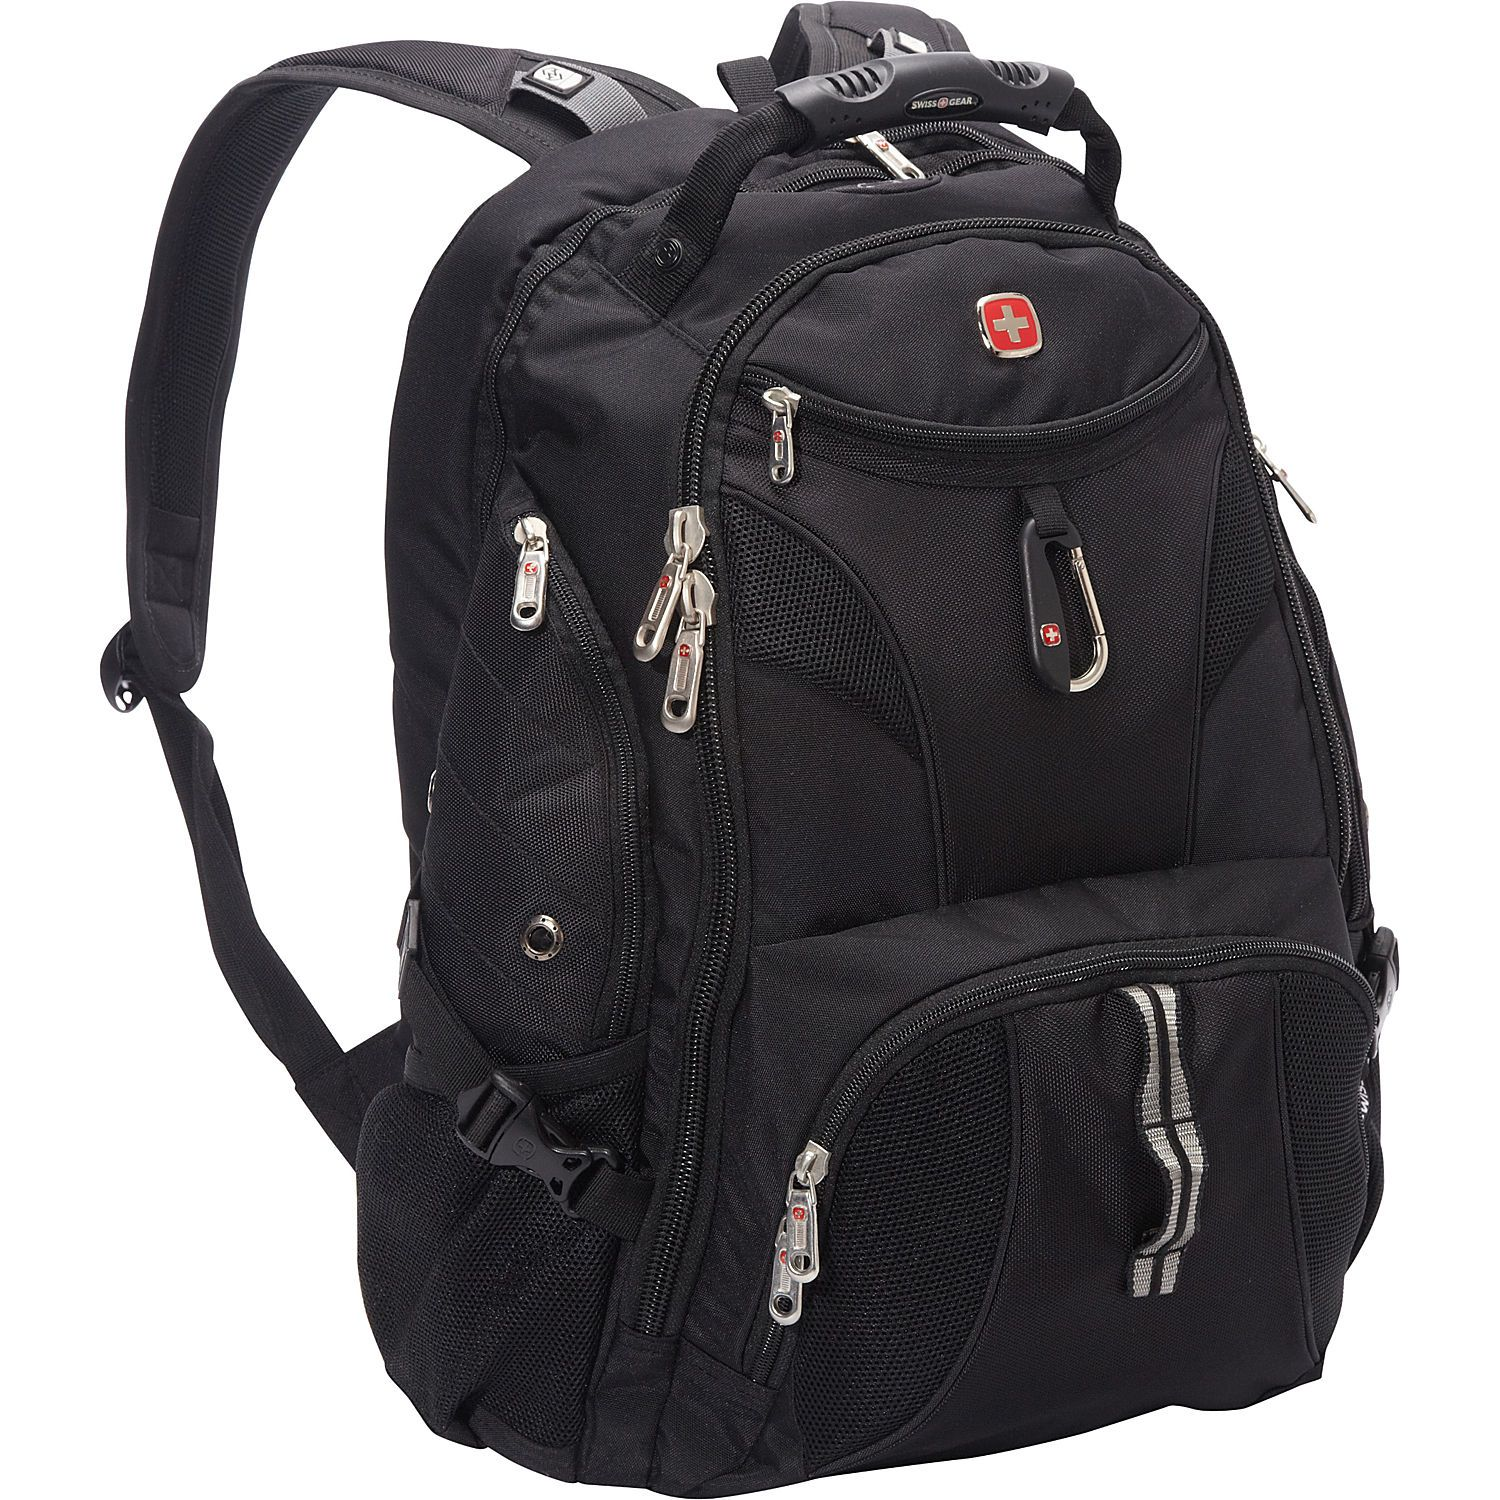 Swissgear Travel Gear Scansmart Backpack Free Shipping